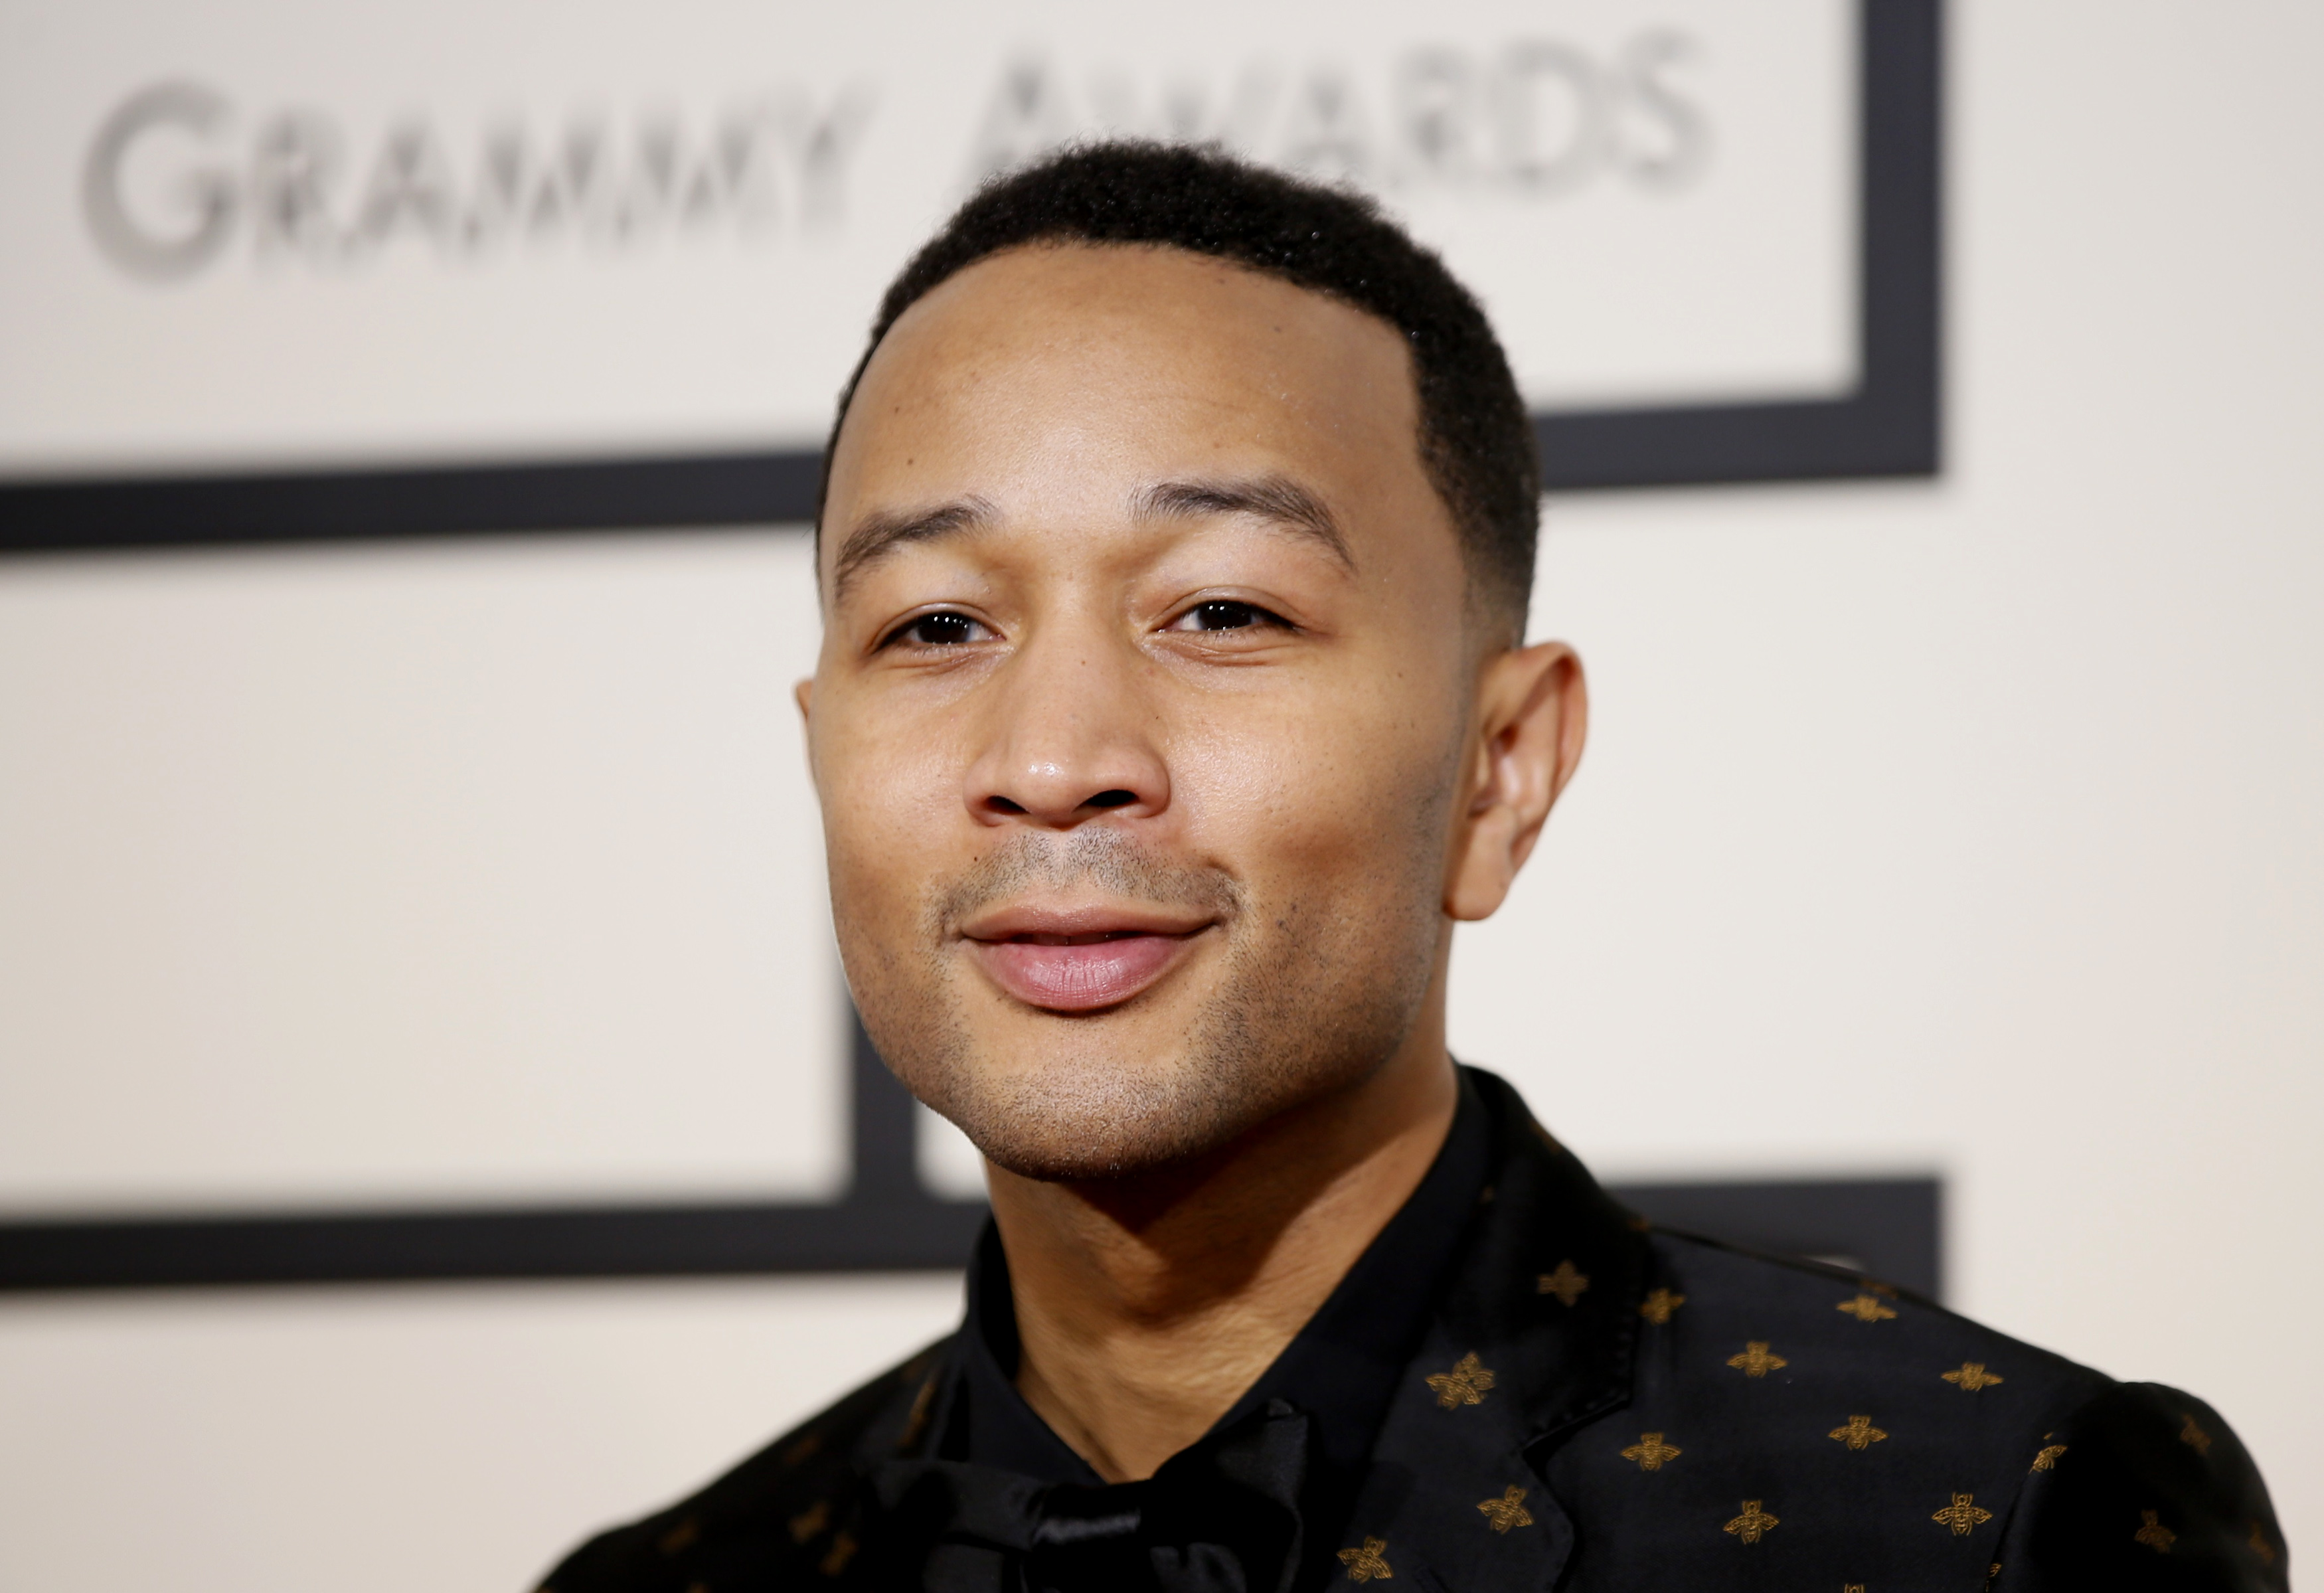 john legend celebrity widescreen wallpaper 63445